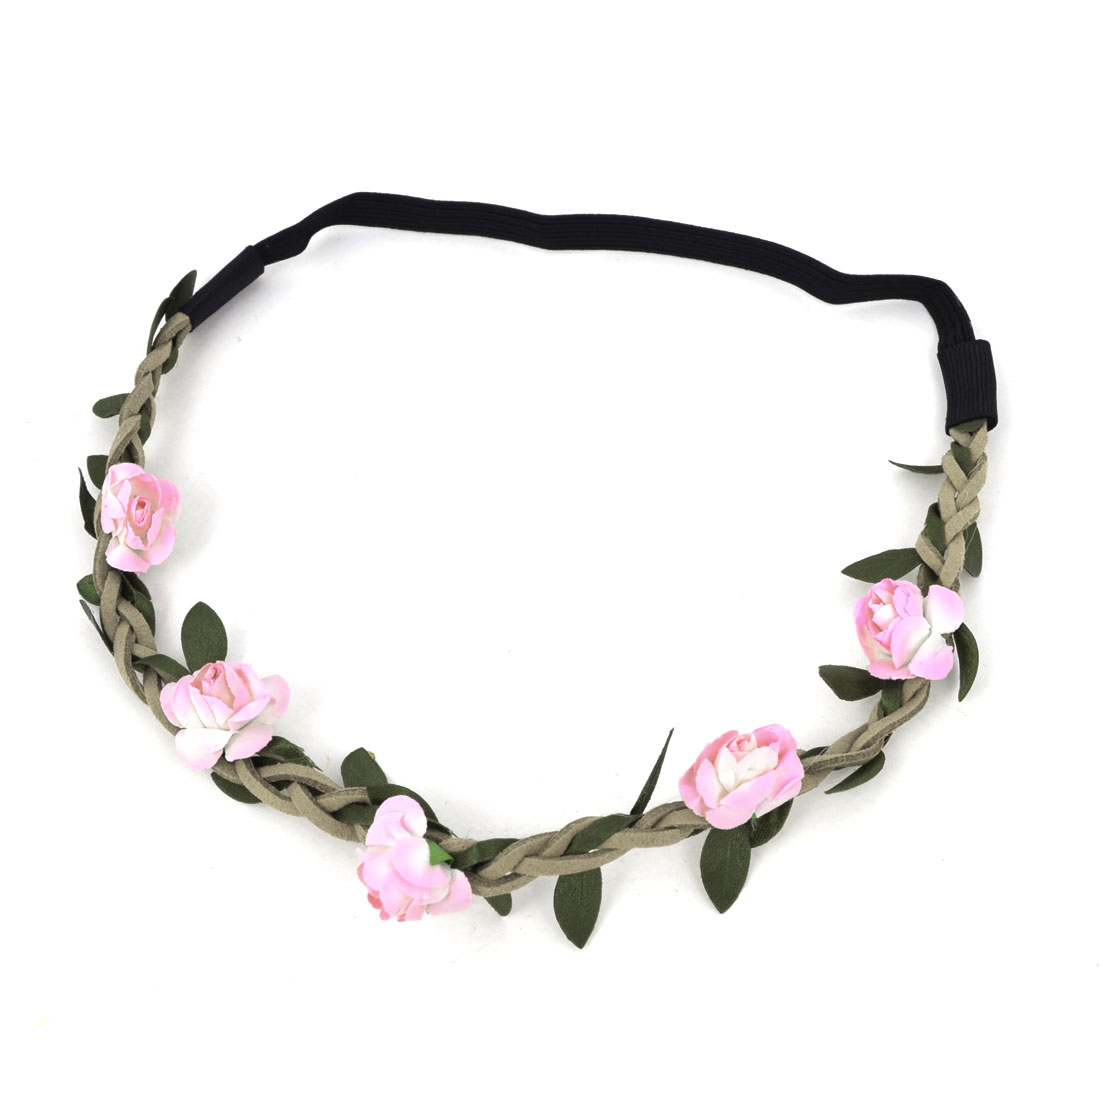 Ladies Pink White Flower Inlaid Braided Strap Stretchy Headband Hair Band